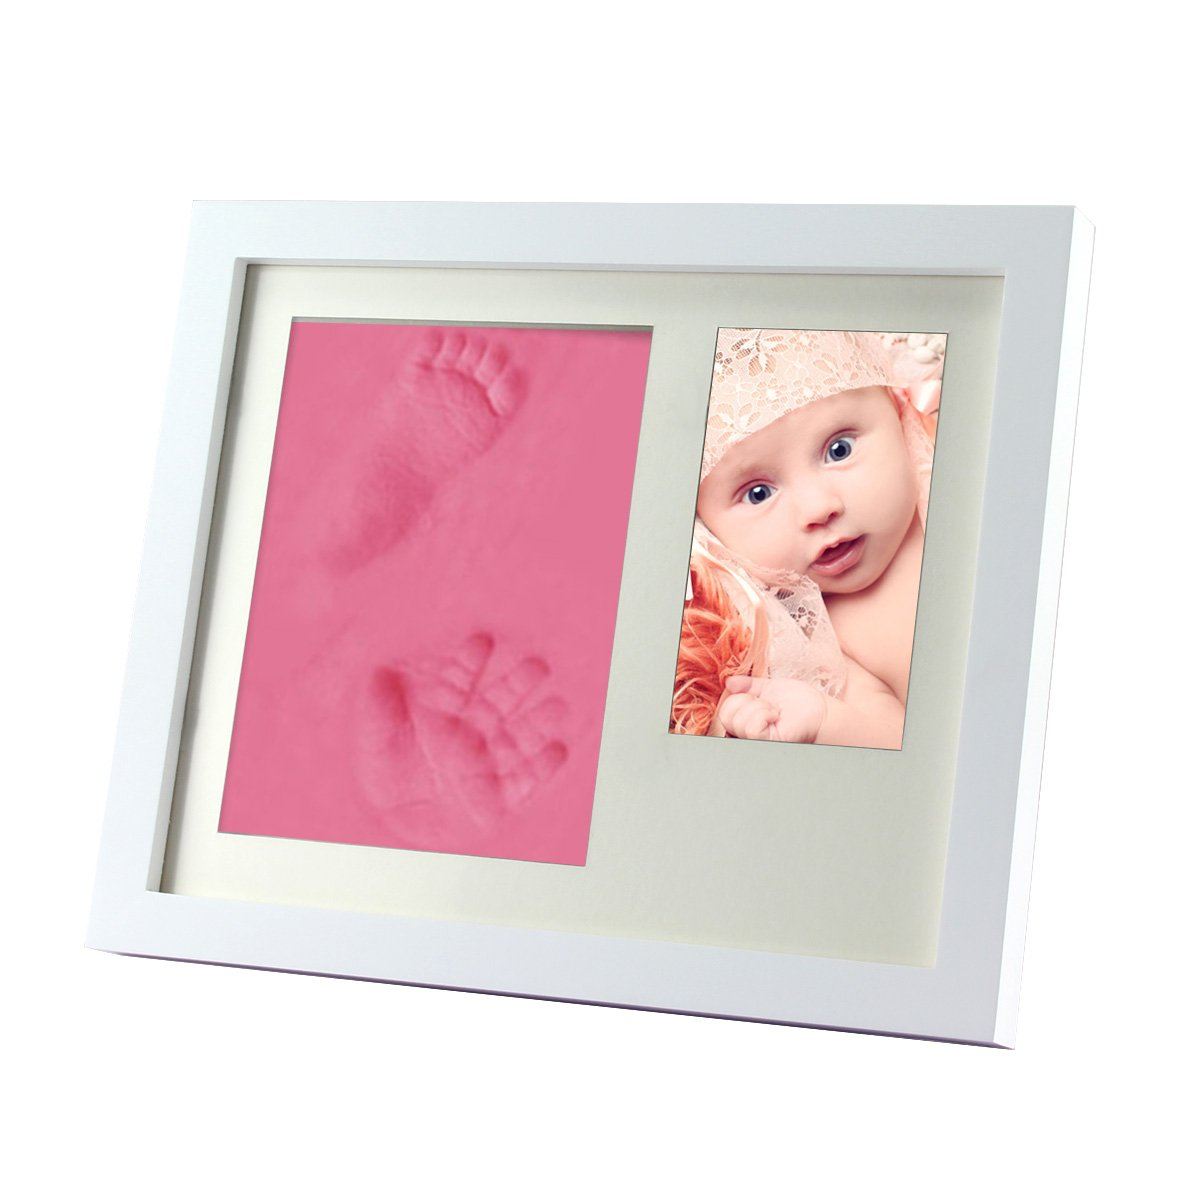 Gembaby Charming Baby Handprint & Footprint Desktop Picture Frame Package, Non Toxic and Child Safe Clay, Unique Gift Idea and Keepsake (White) by Gembaby